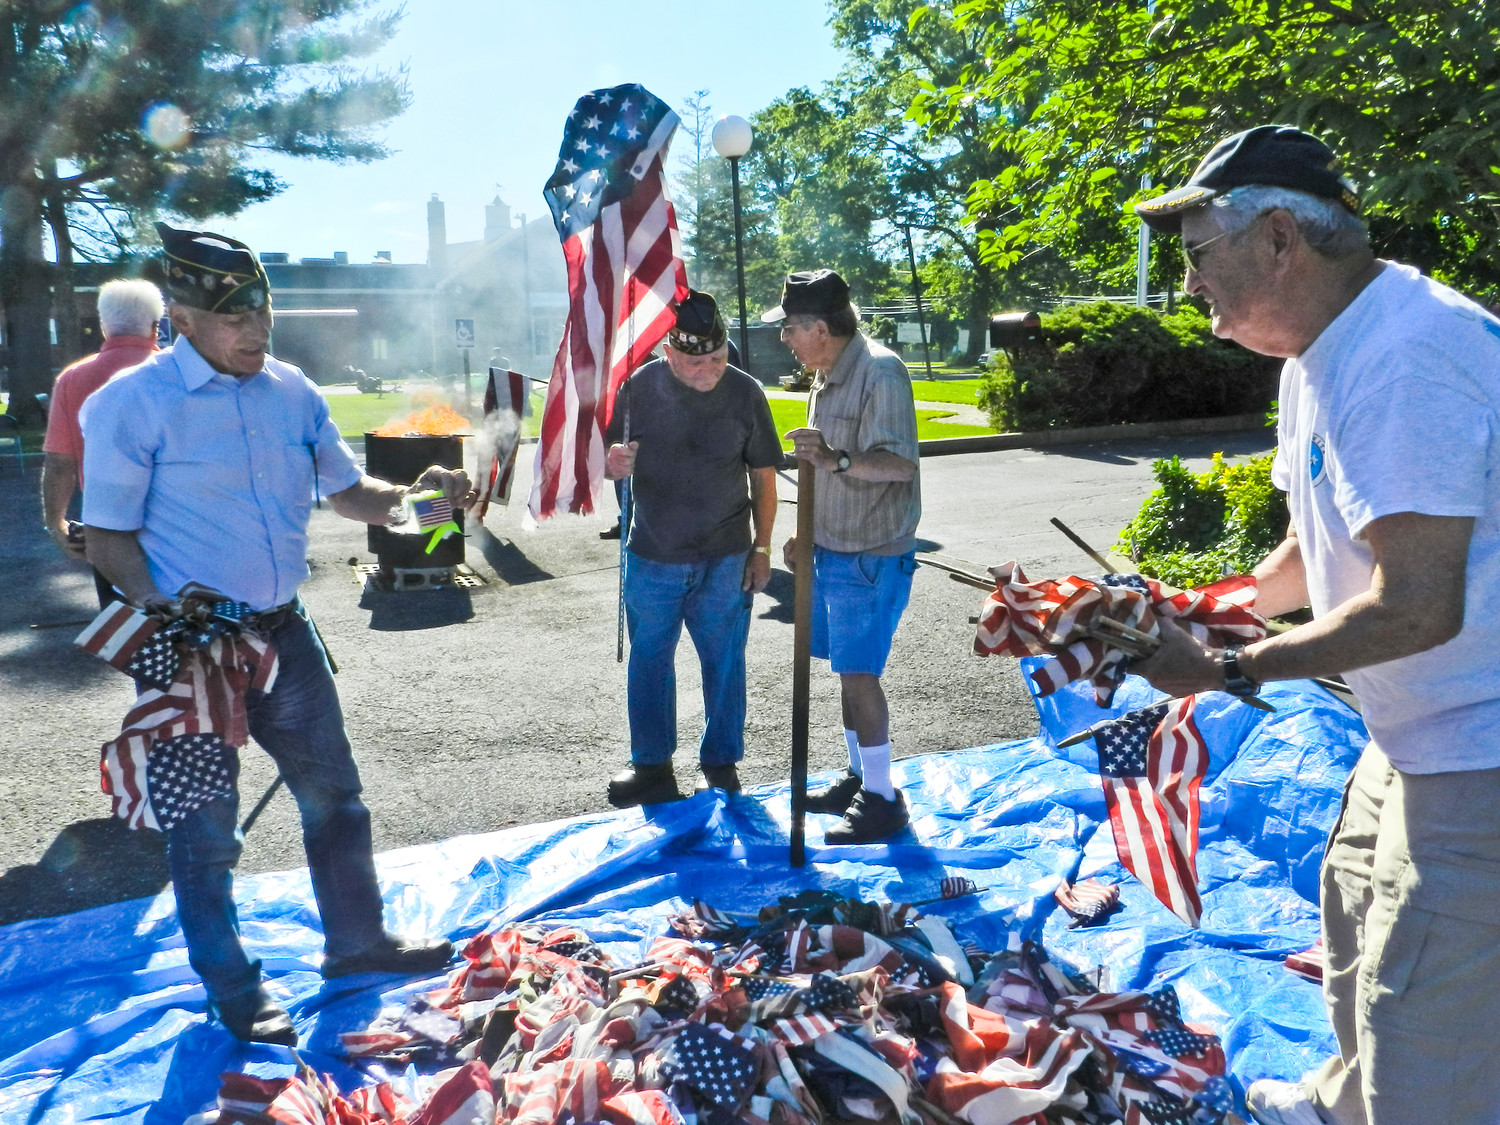 William Laderer, left, Rocco Douso, Carter Haff and Lou Guadagni sifted through the pile of donated flags.